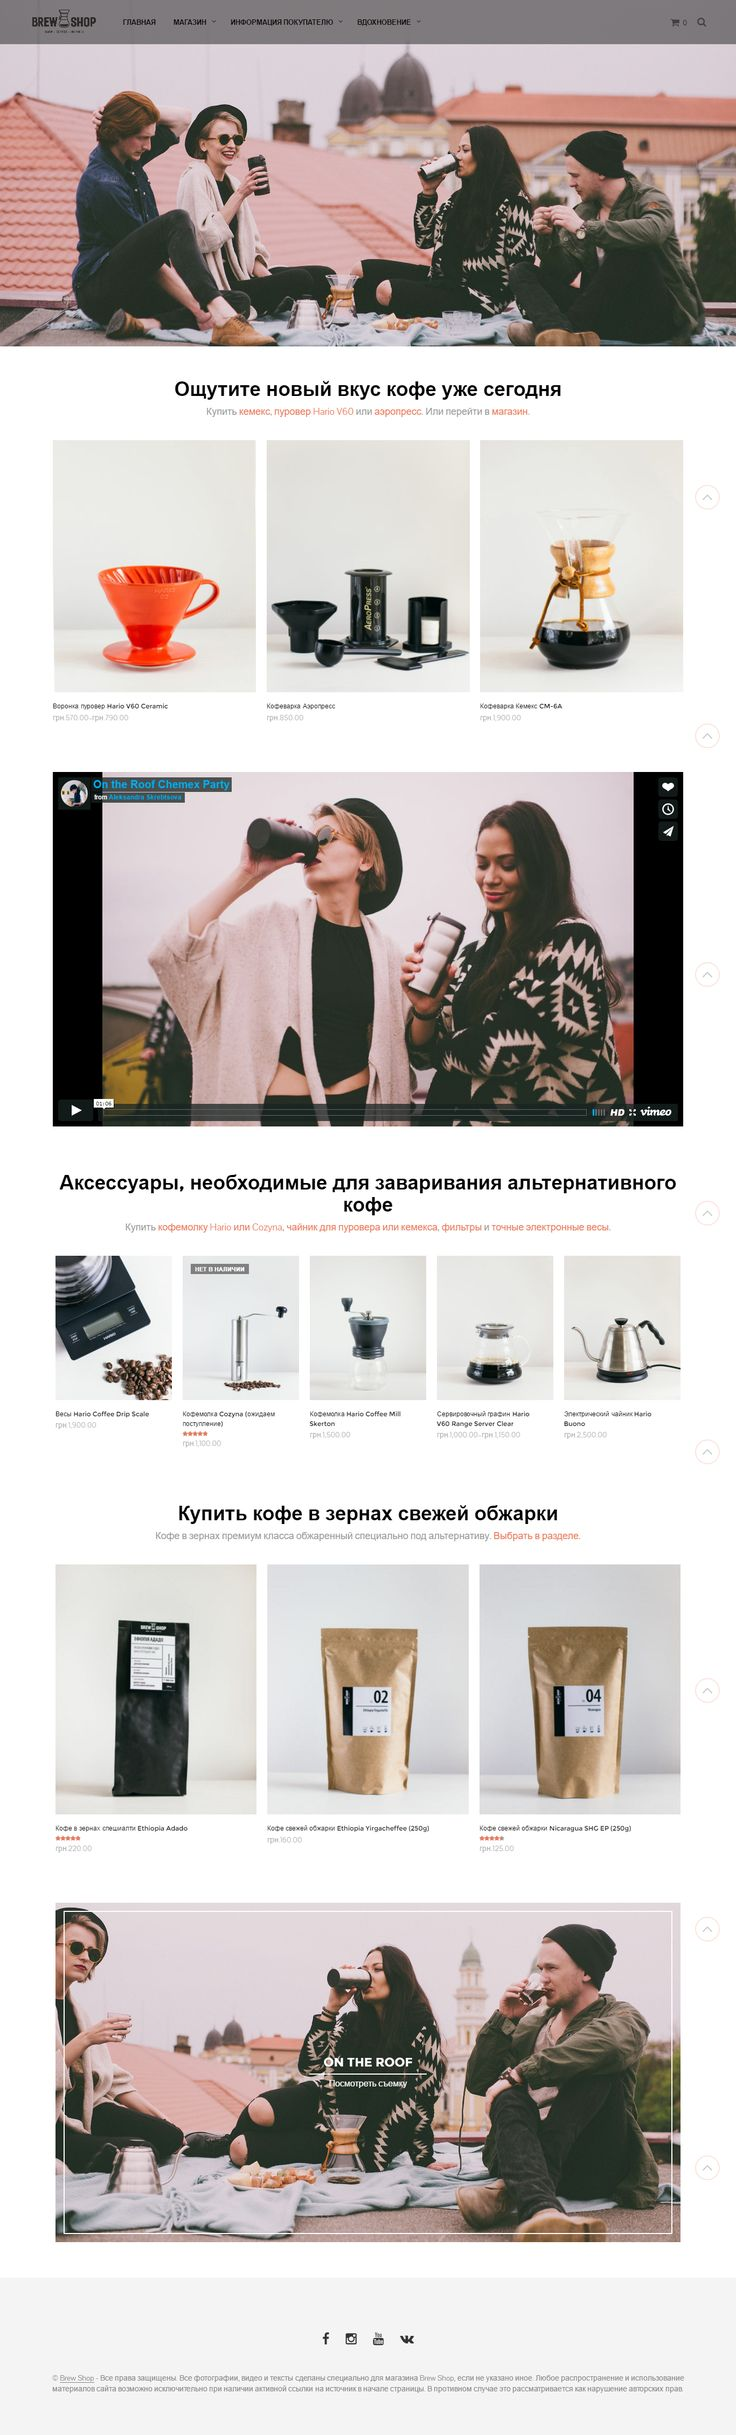 Brew Shop is an online shop for alternative brewing built with the Shopkeeper WordPress theme. Check out the theme here: http://themeforest.net/item/shopkeeper-responsive-wordpress-theme/9553045?&utm_source=pinterest.com&utm_medium=social&utm_content=brew-shop&utm_campaign=showcase #brewing #coffee #onlineshop #wordpress #web #webdesign #design